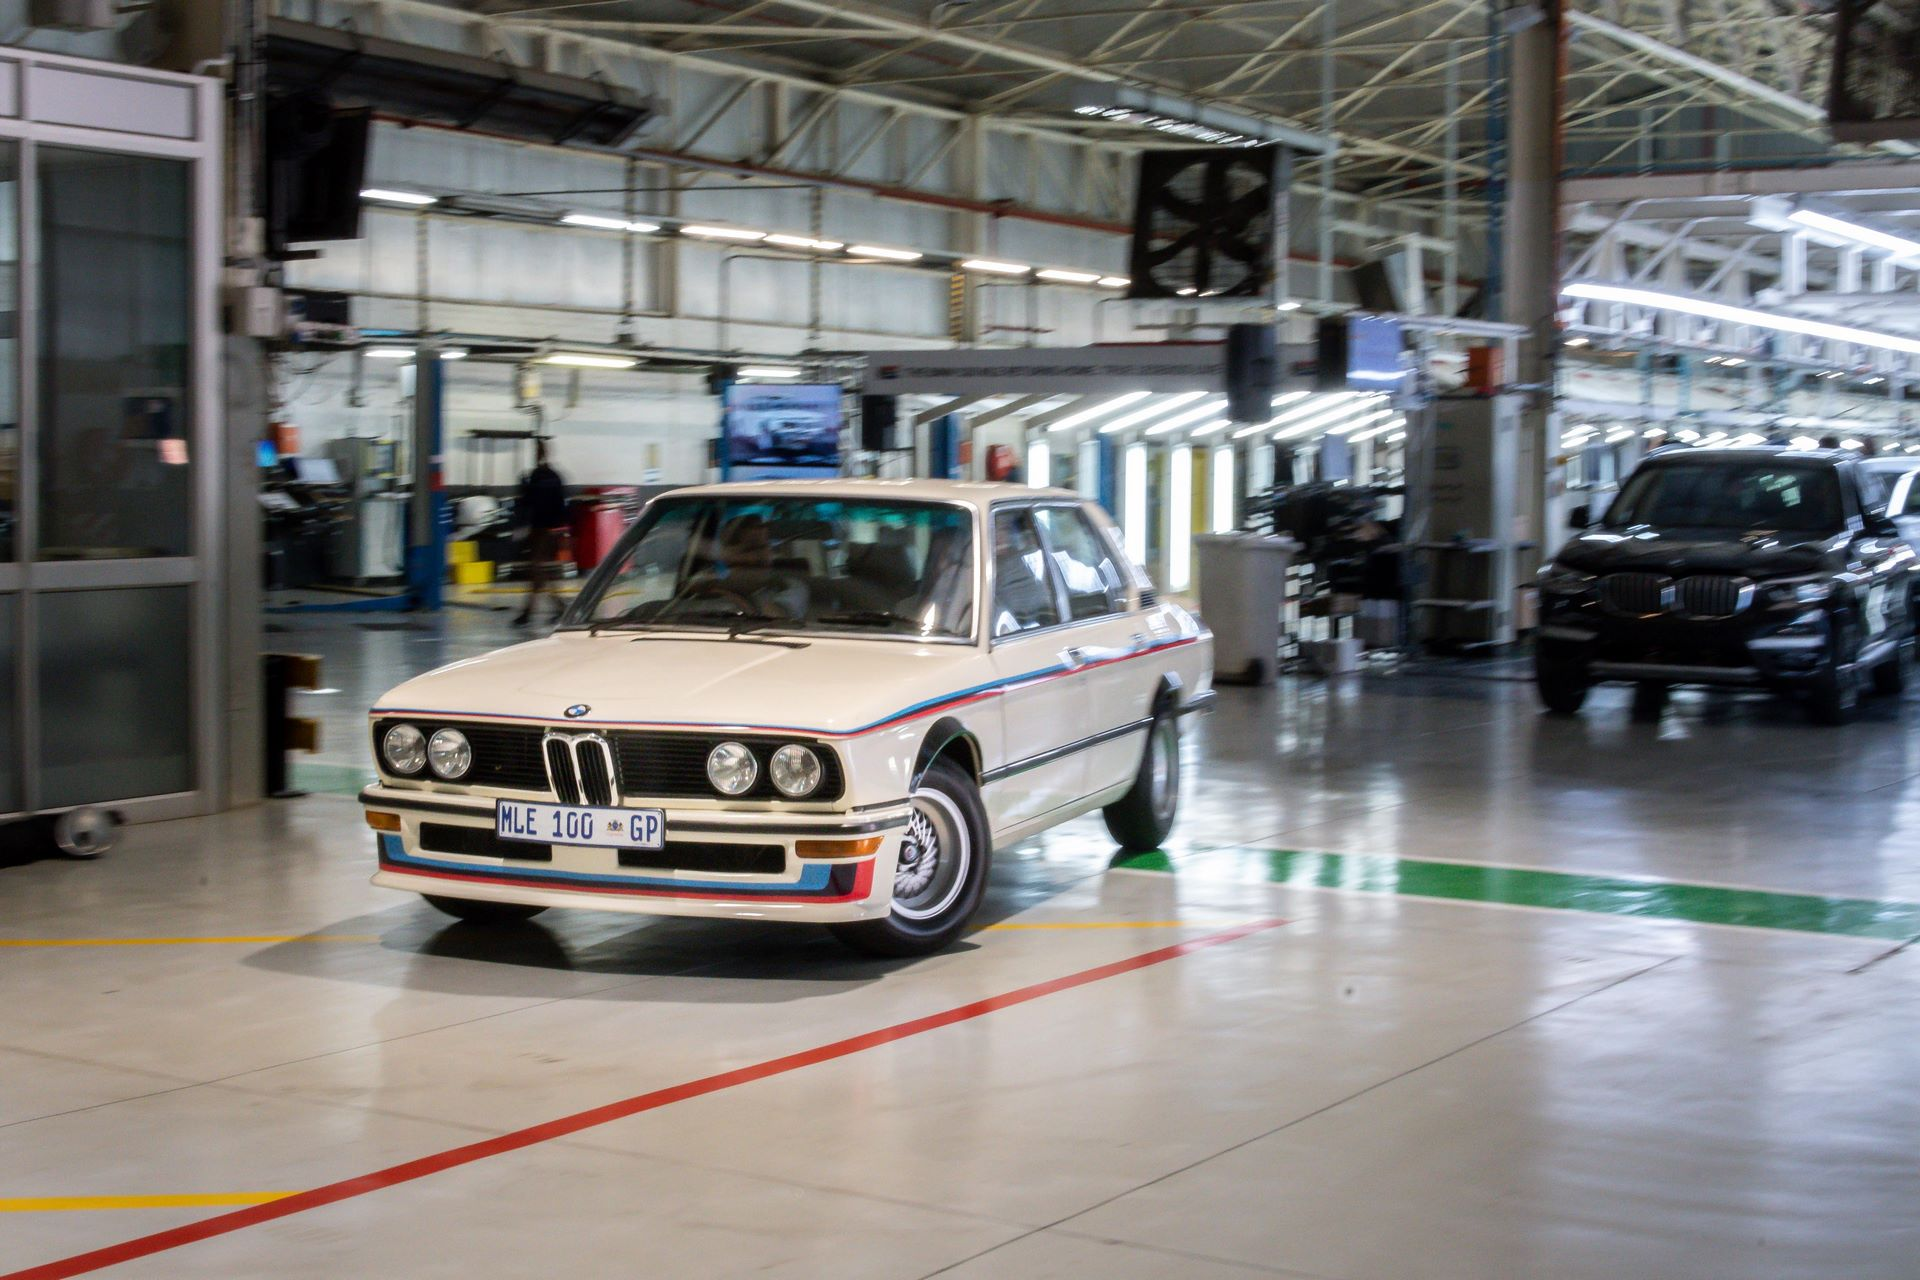 BMW-530-MLE-restoration-in-South-Africa-95